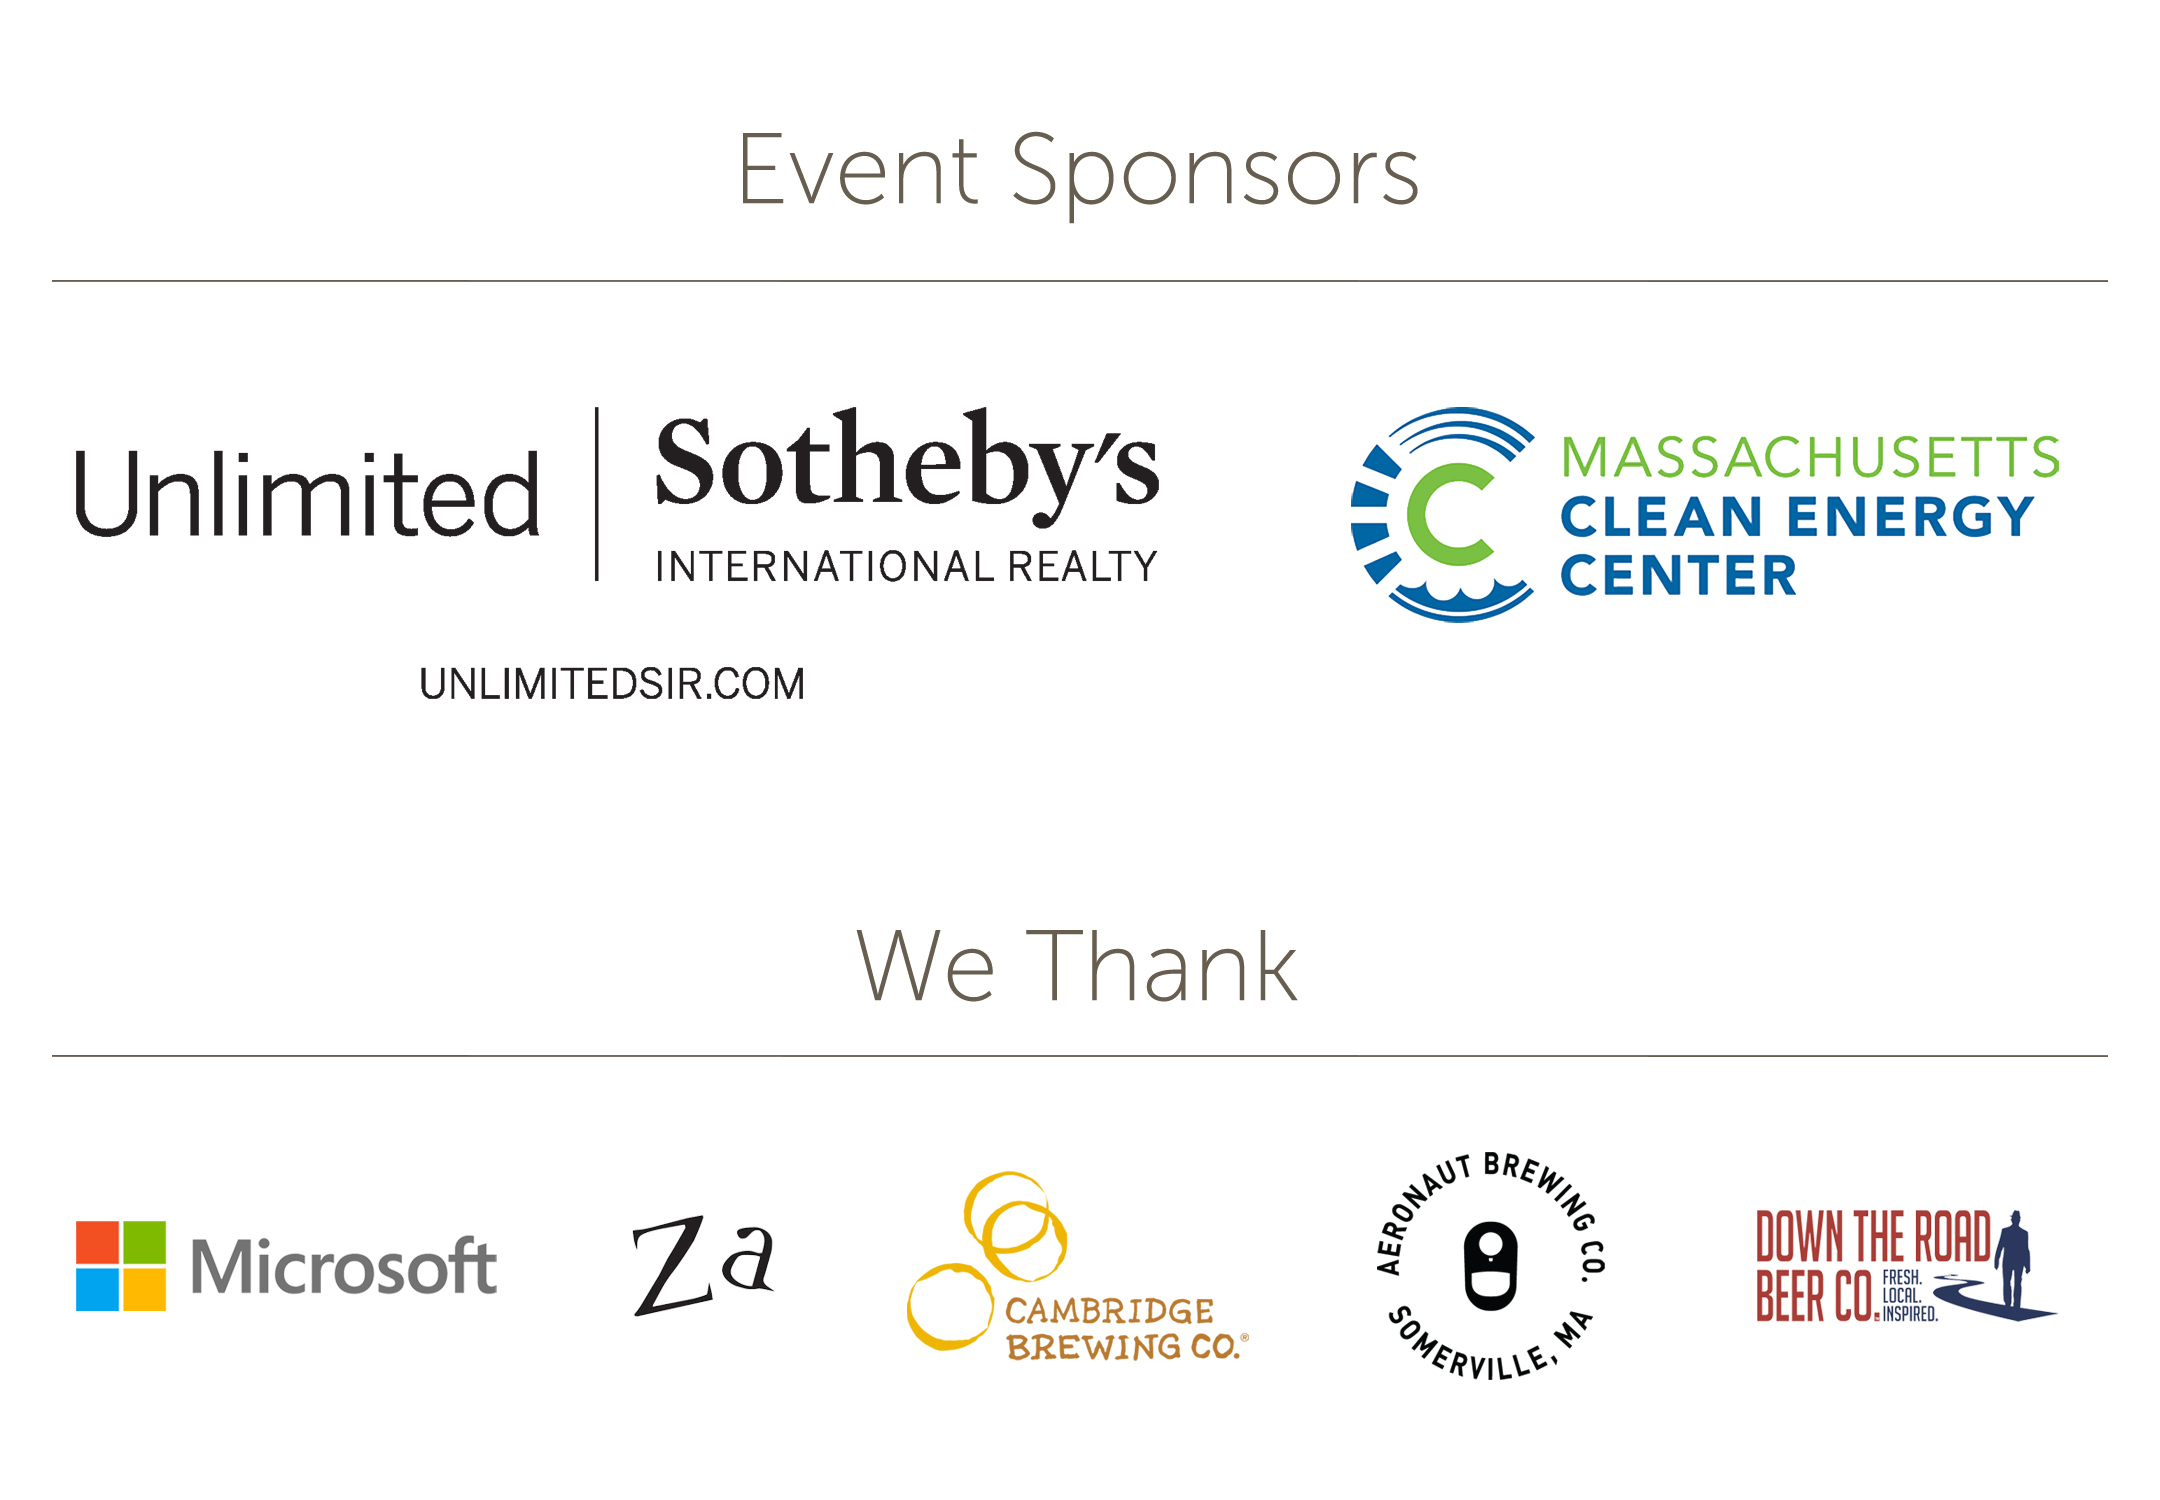 Toast To Impact Party: Celebrating MA' Health and Cleantech